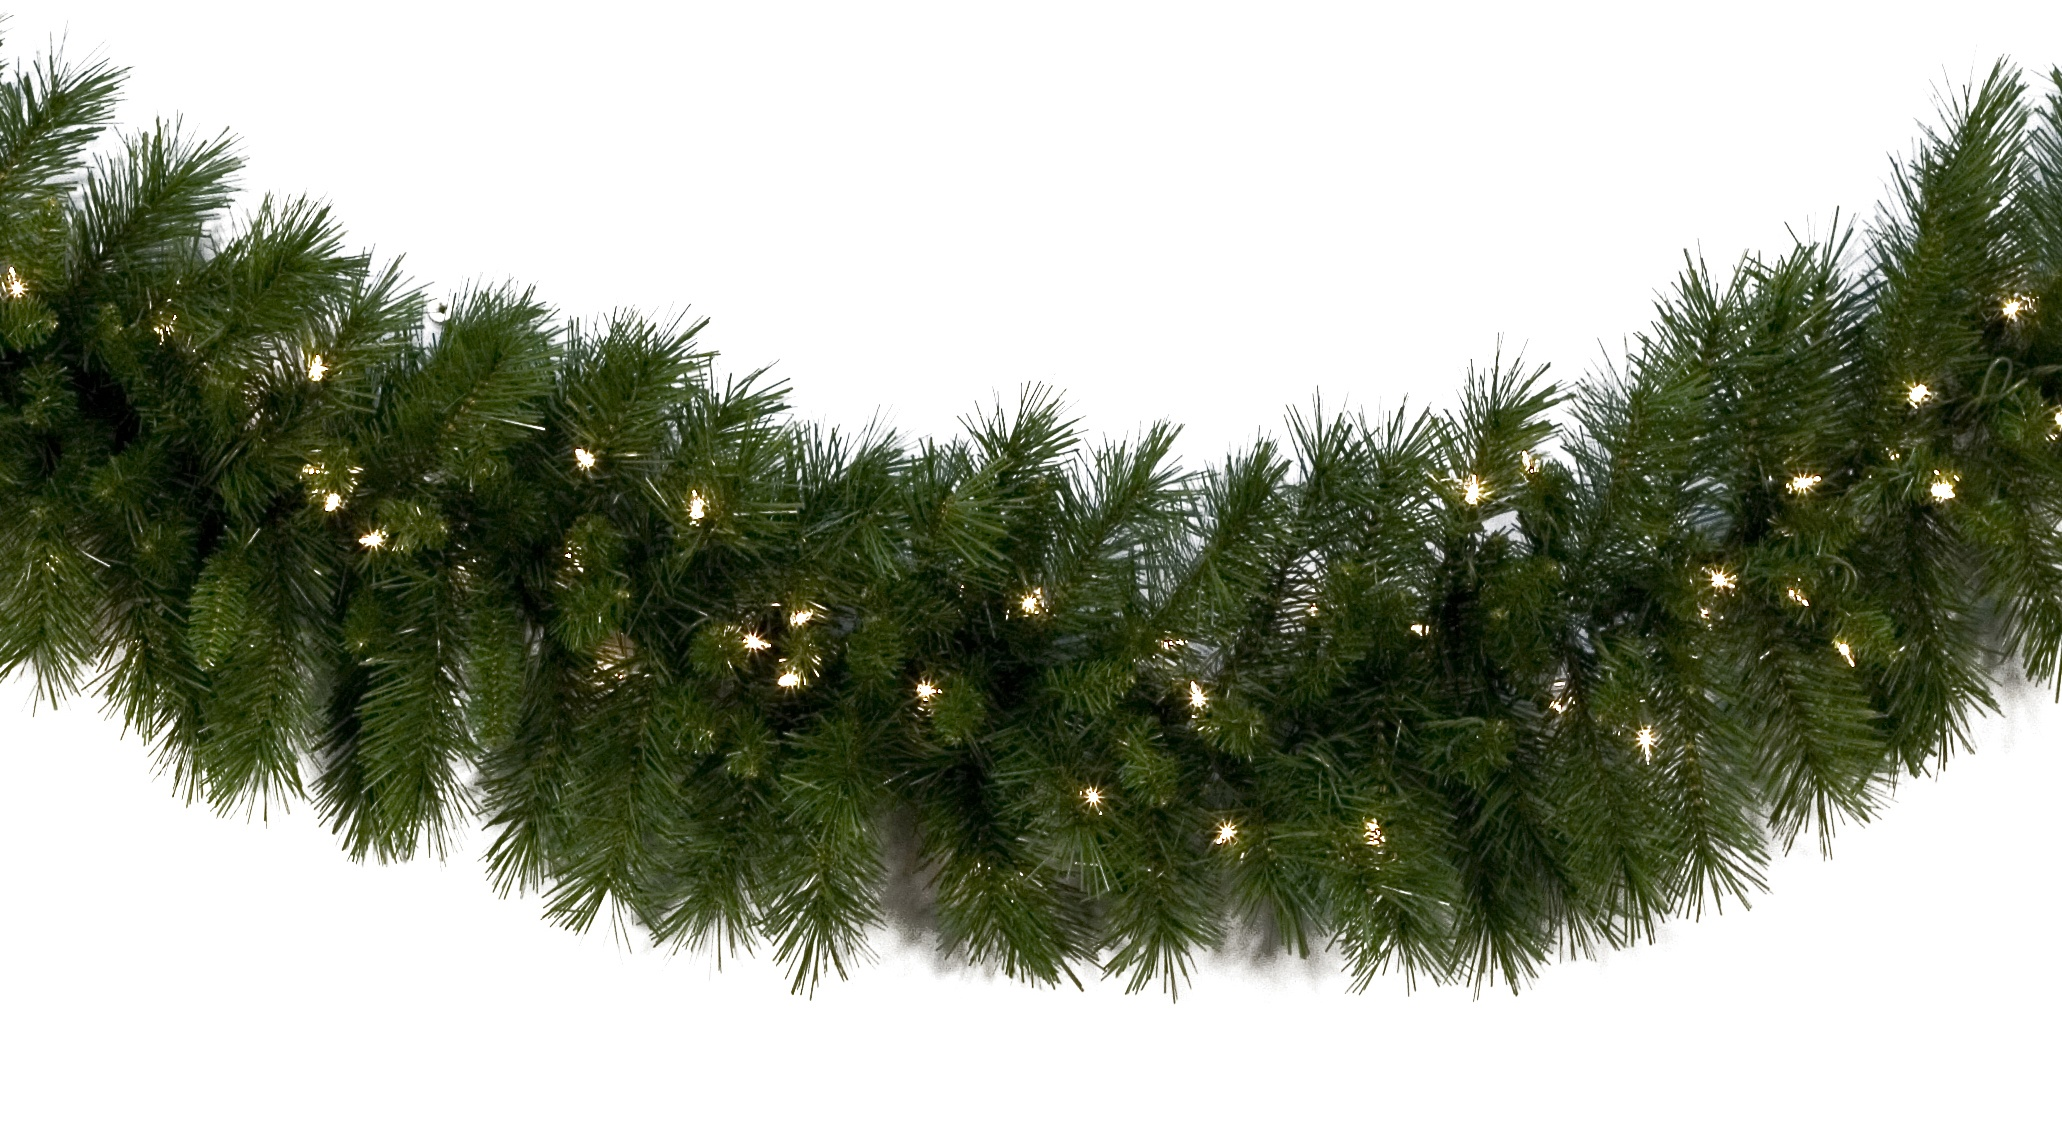 Dunhill Fir Christmas Tree.Dunhill Fir Prelit Led Christmas Garland Warm White Lights